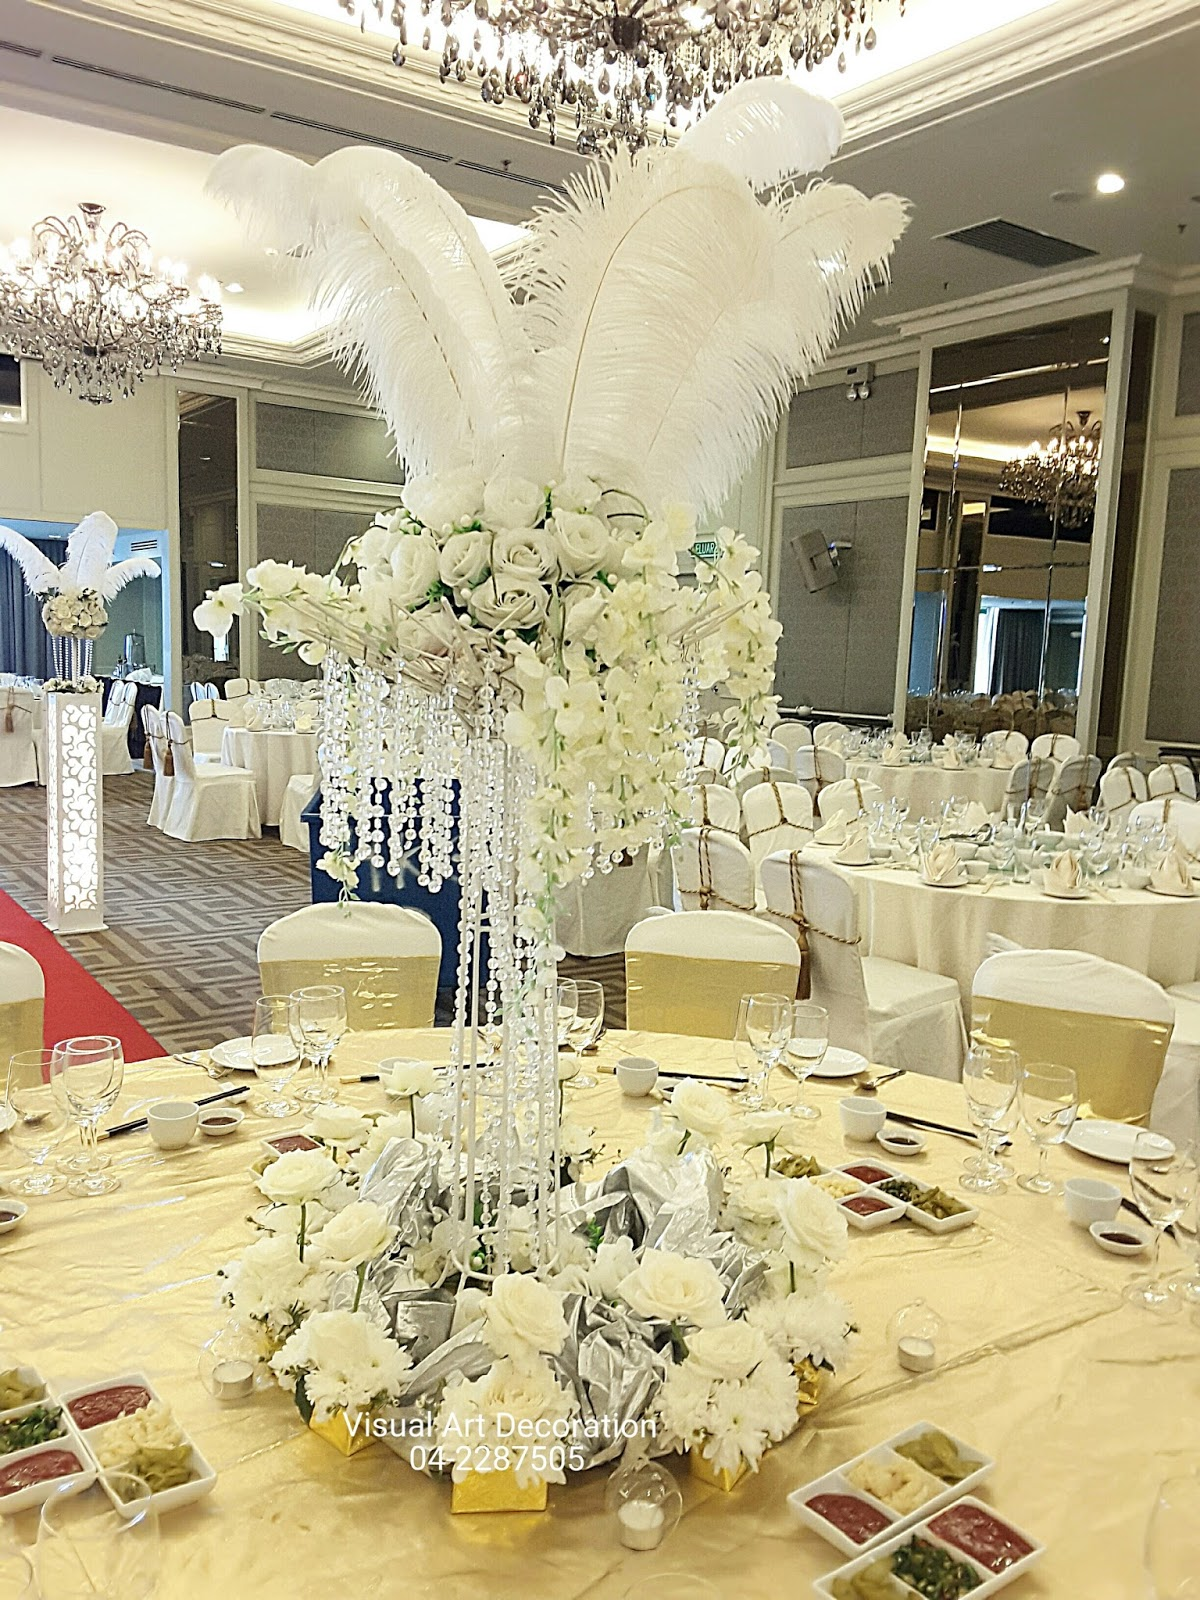 Visual art penang wedding party and event decoration posted by visual art penang wedding event decoration 1 comment links to this post junglespirit Images